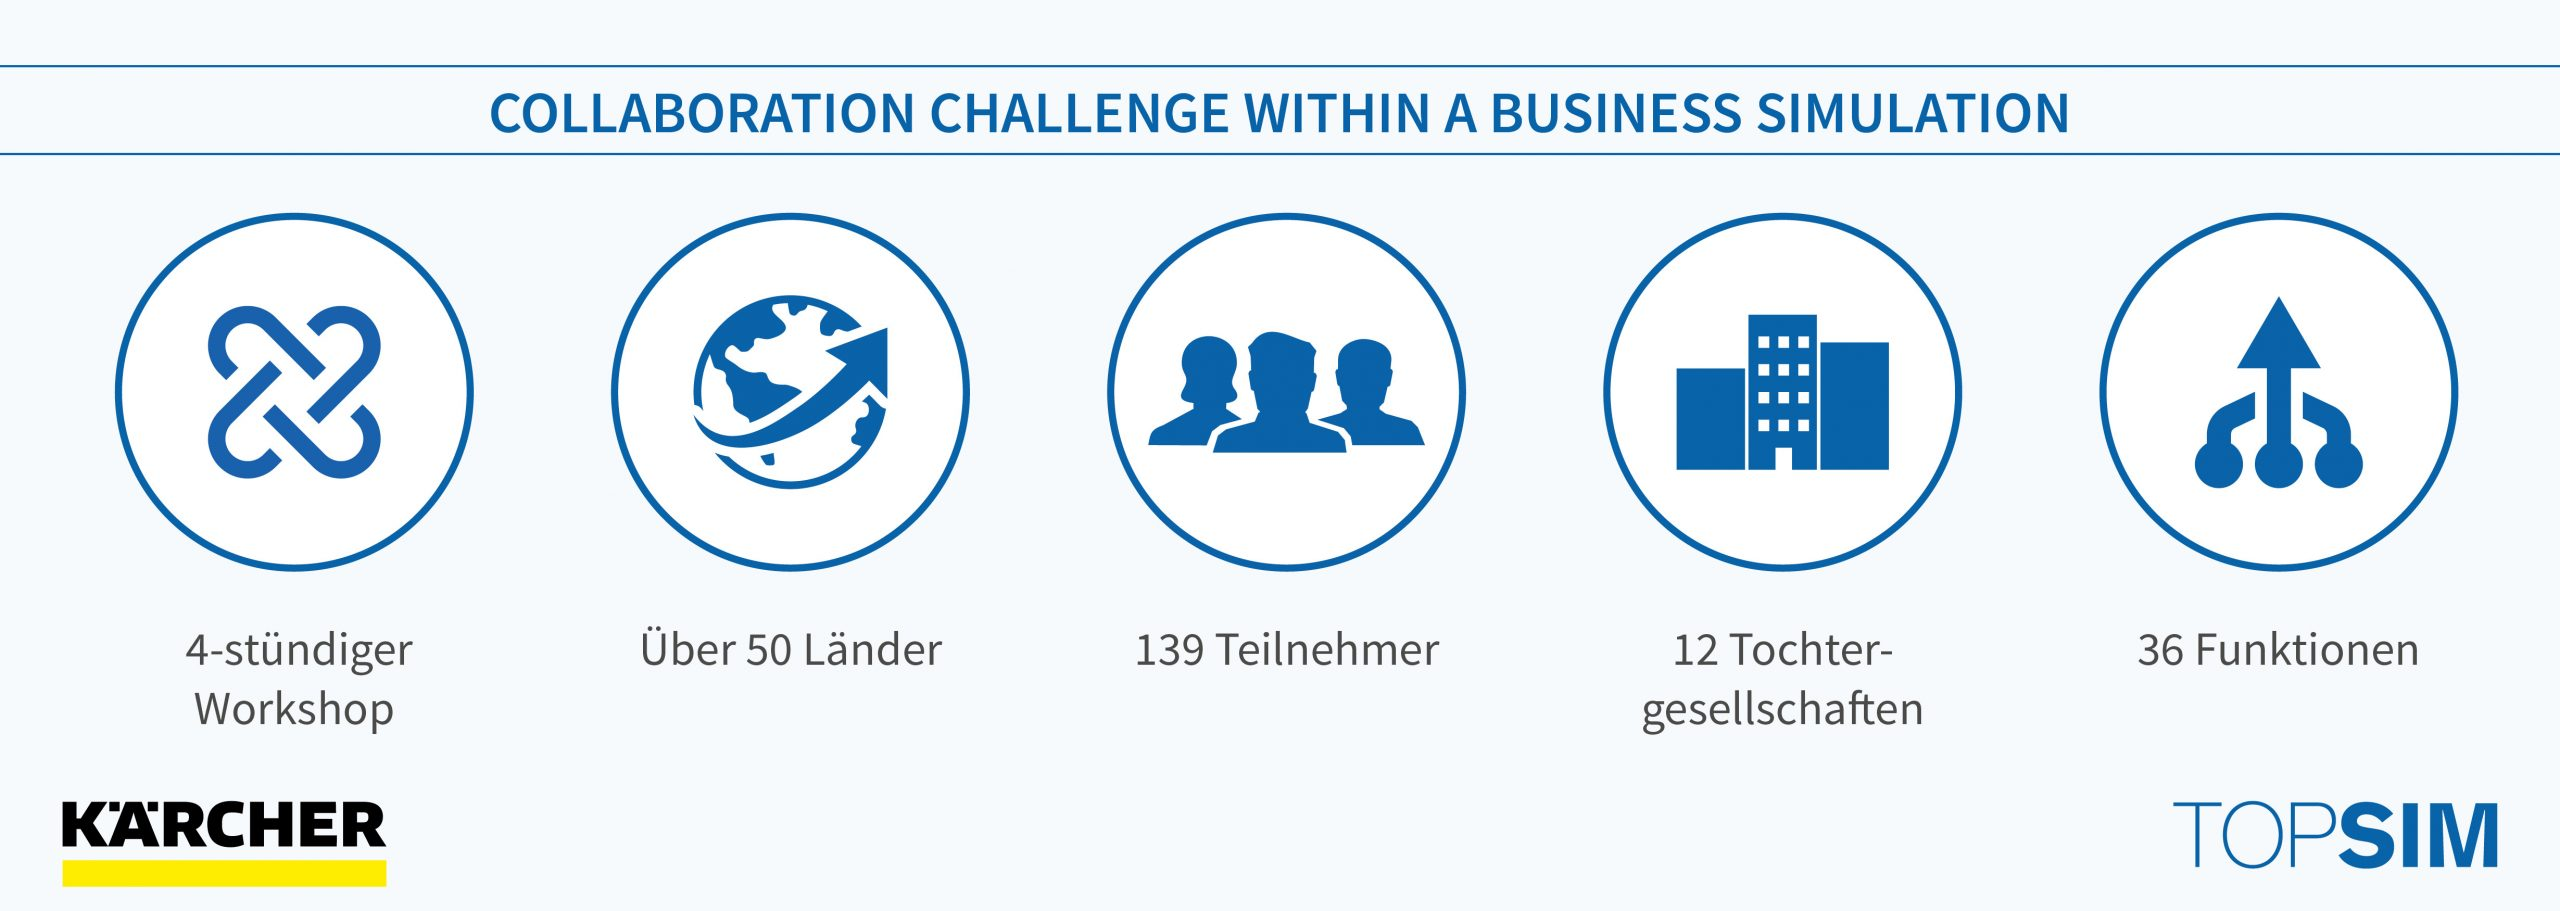 Collaboration Challenge with a Business Simulation